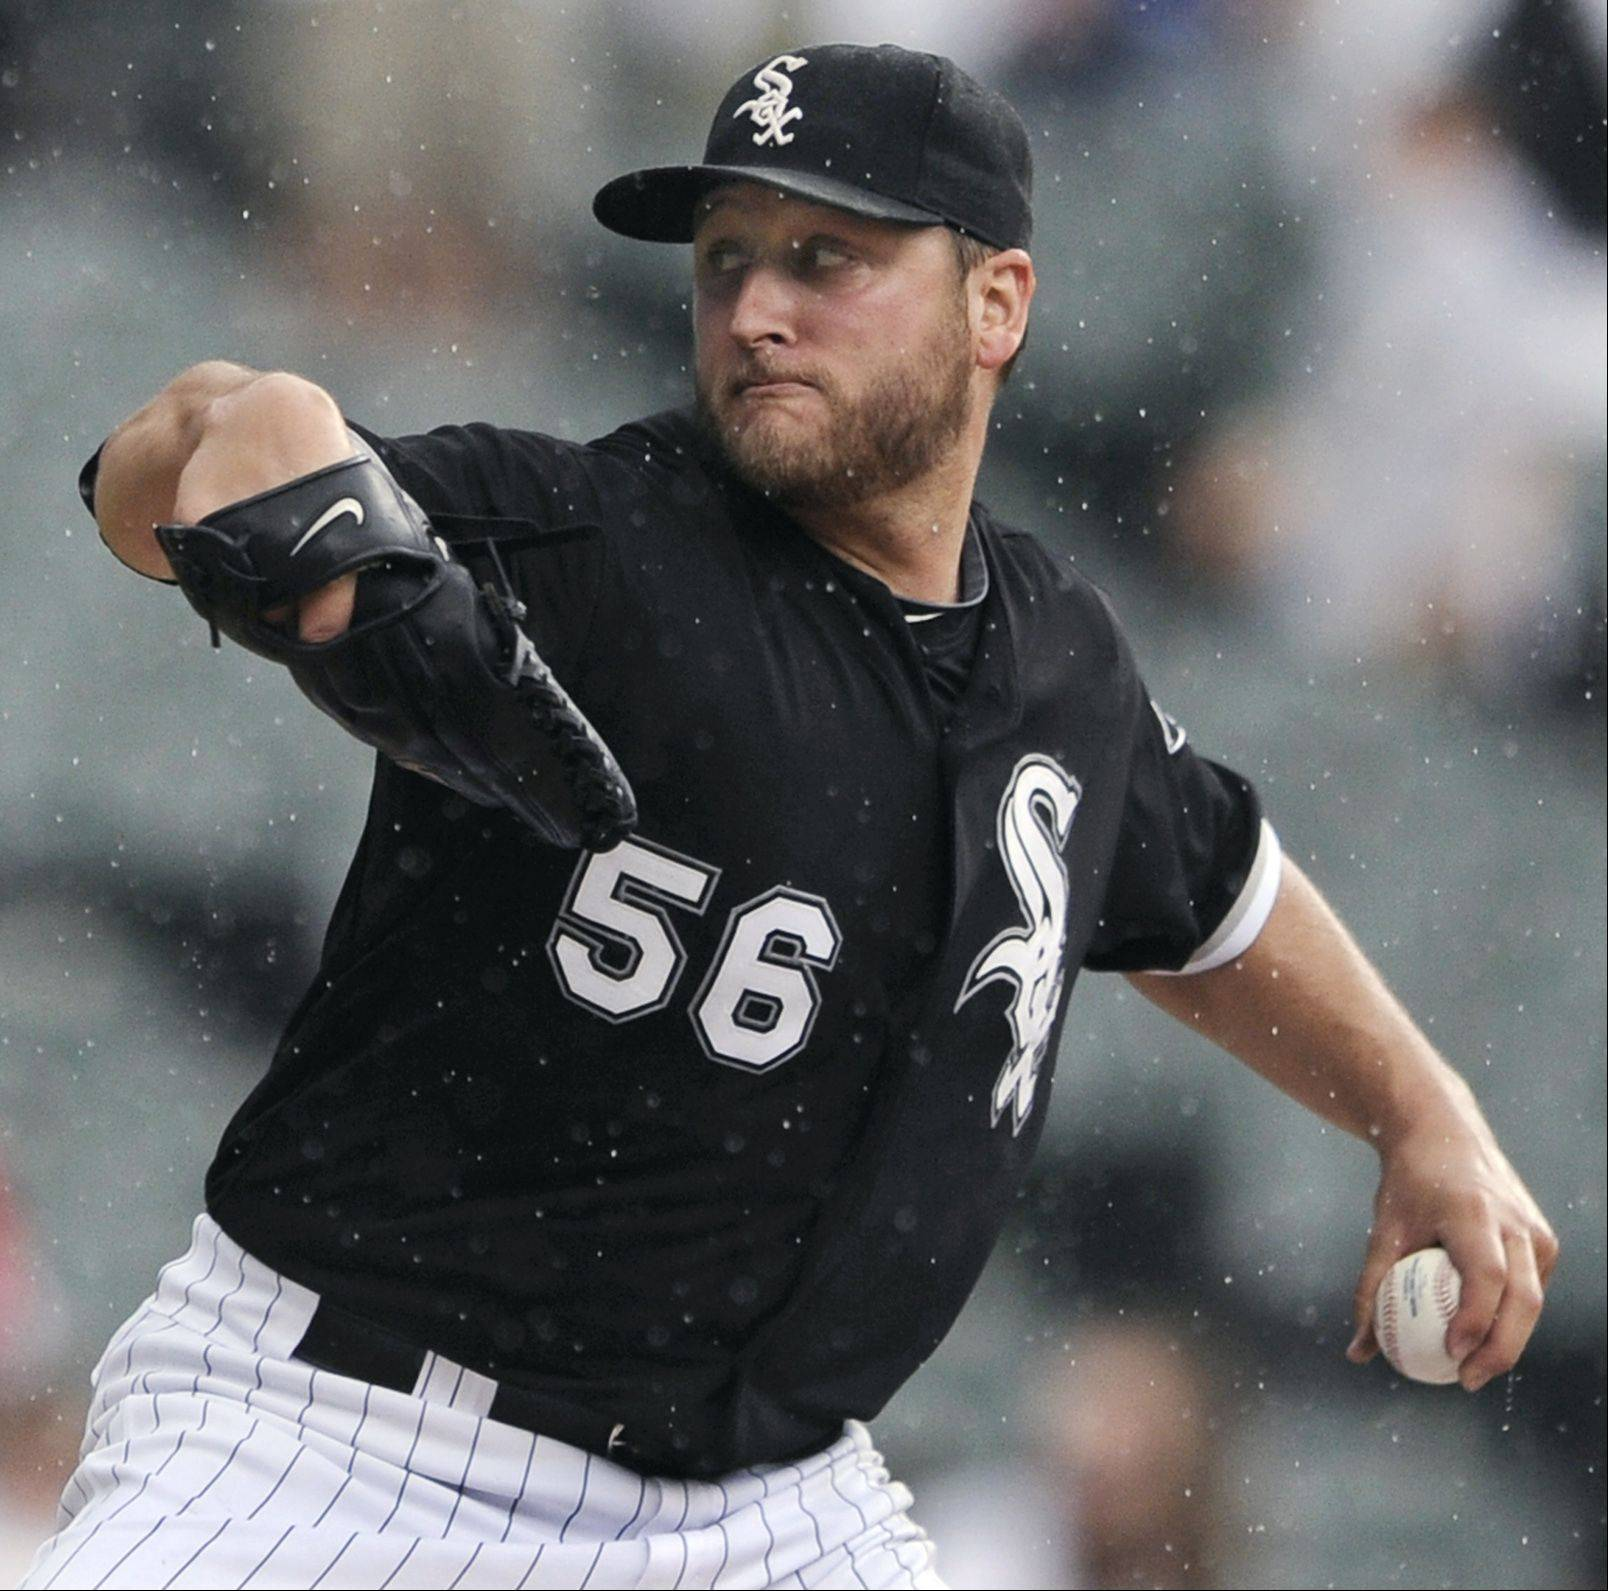 Free agent Mark Buehrle reportedly has 13 teams pursuing his services.